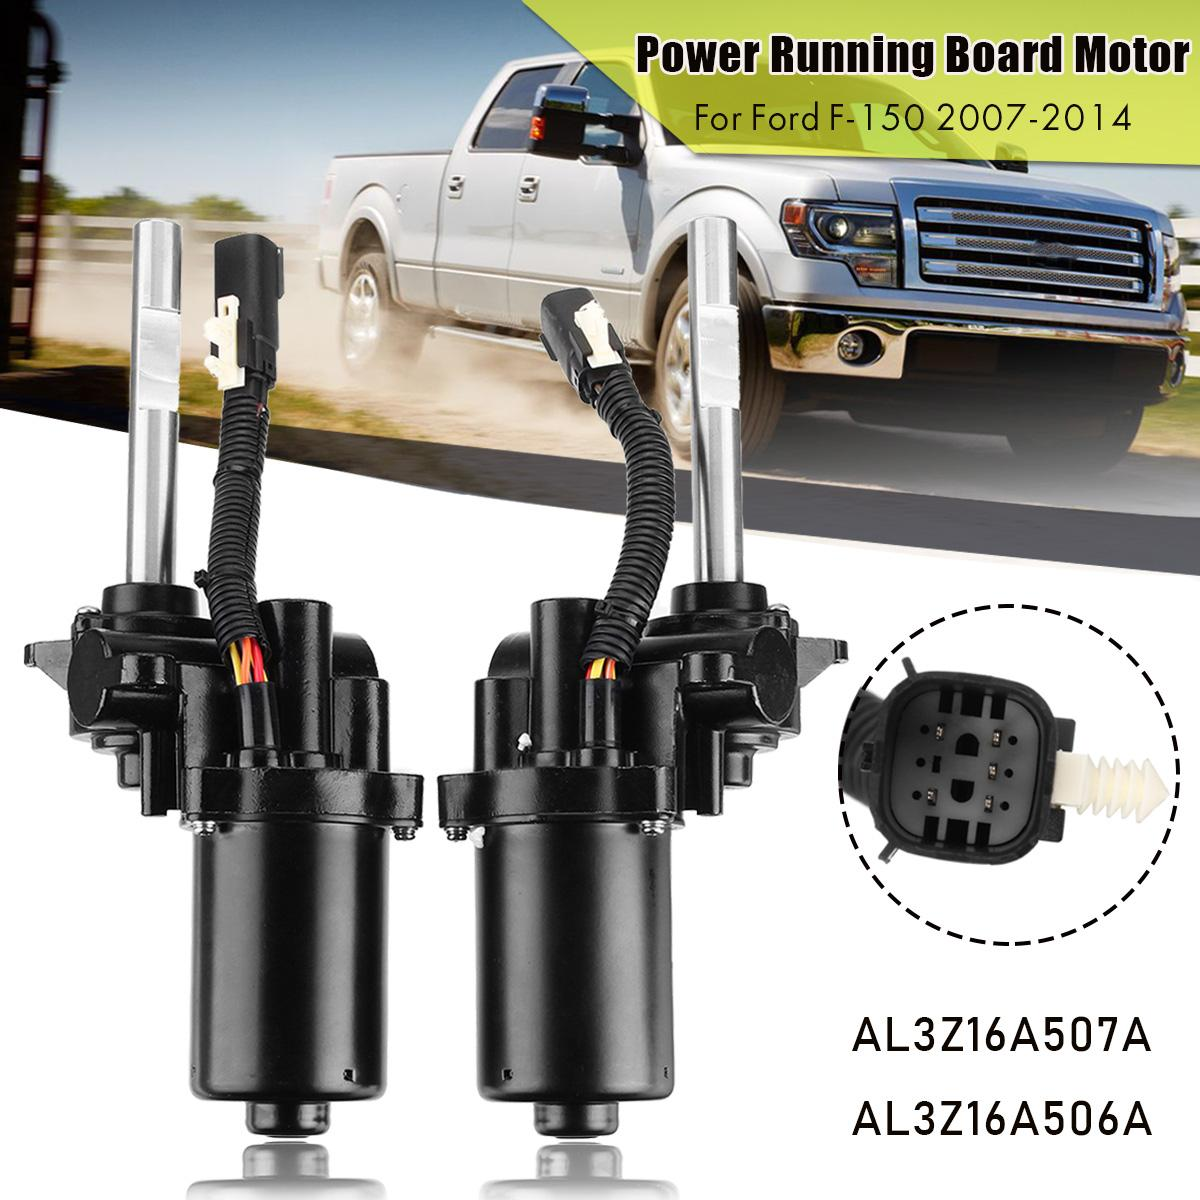 Front Power Running Board Motor For Ford F 150 2007 2014 AL3Z16A507A AL3Z16A506A